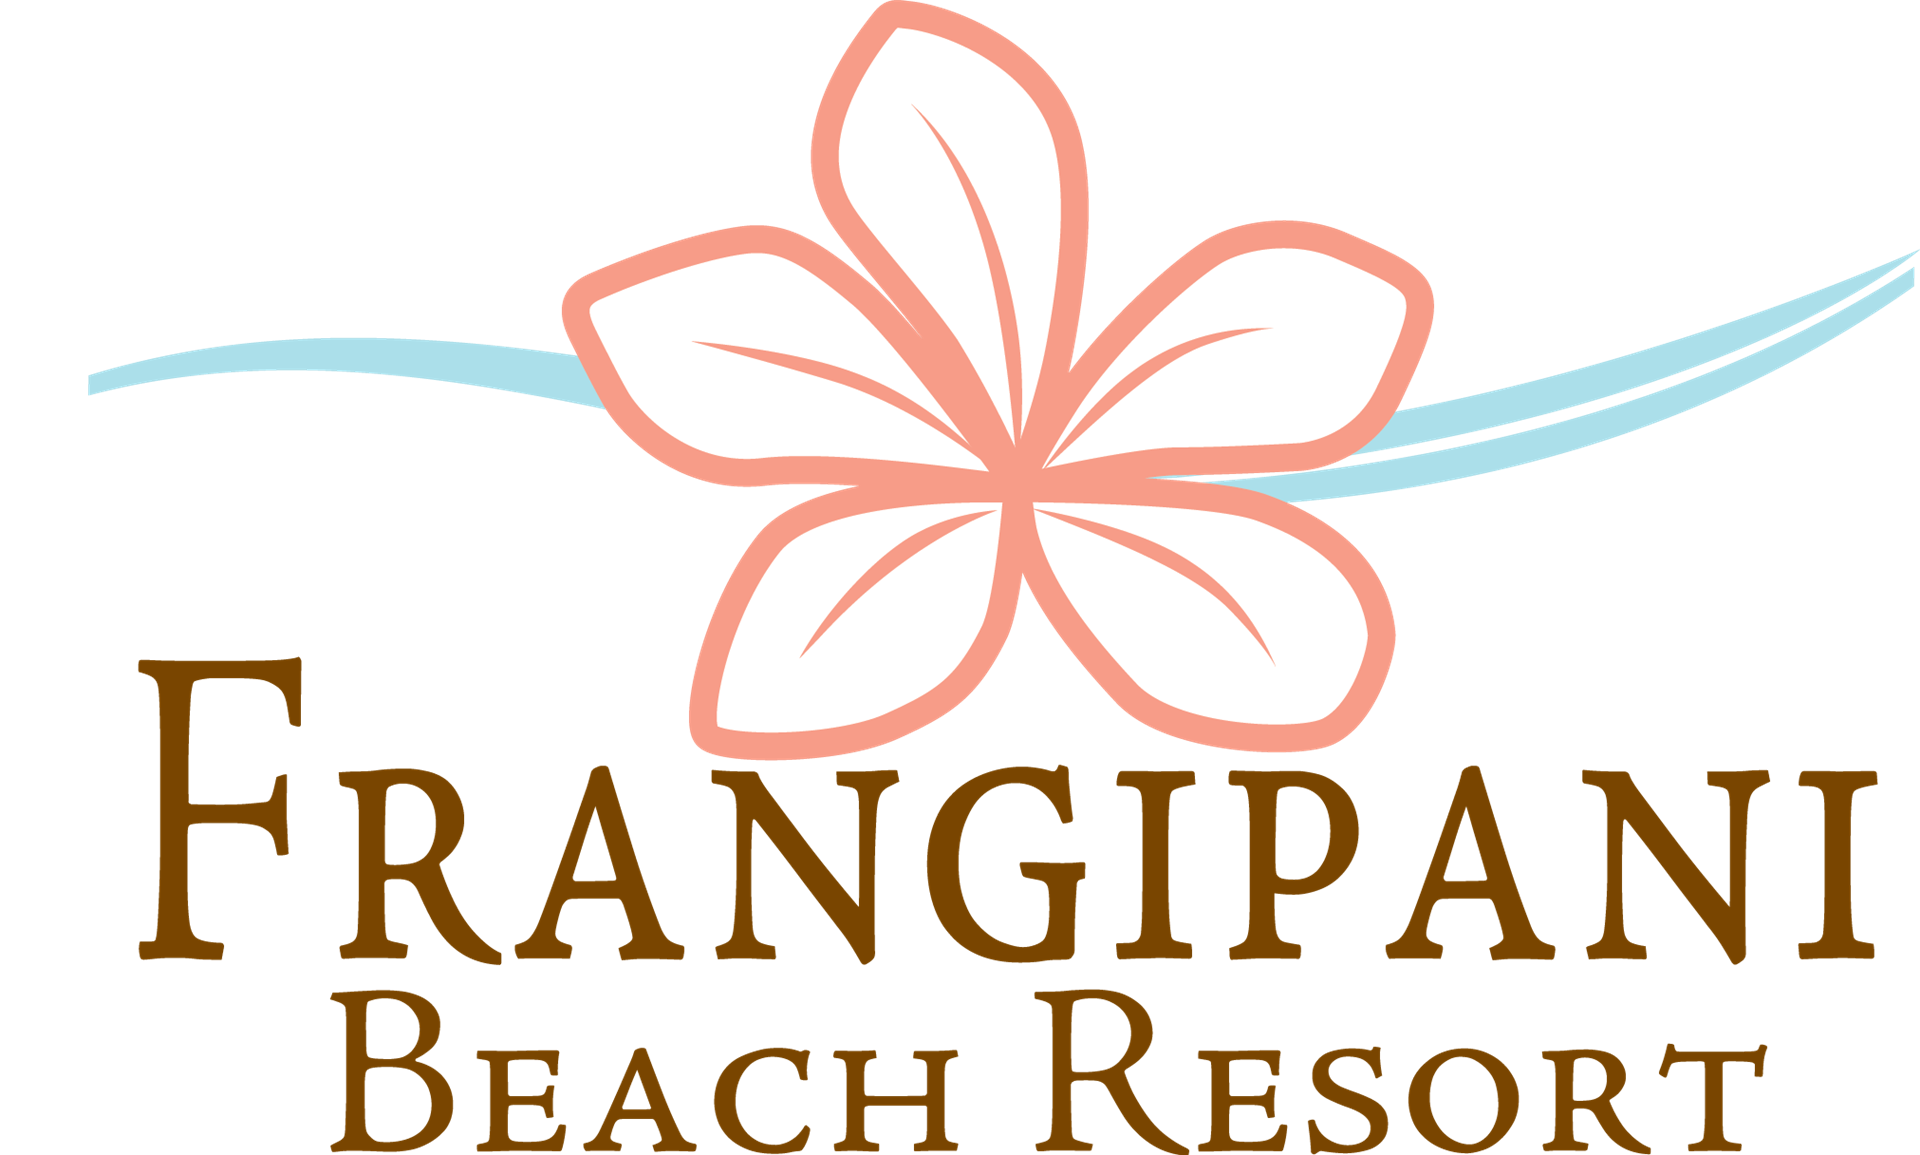 Frangipani Beach Resort